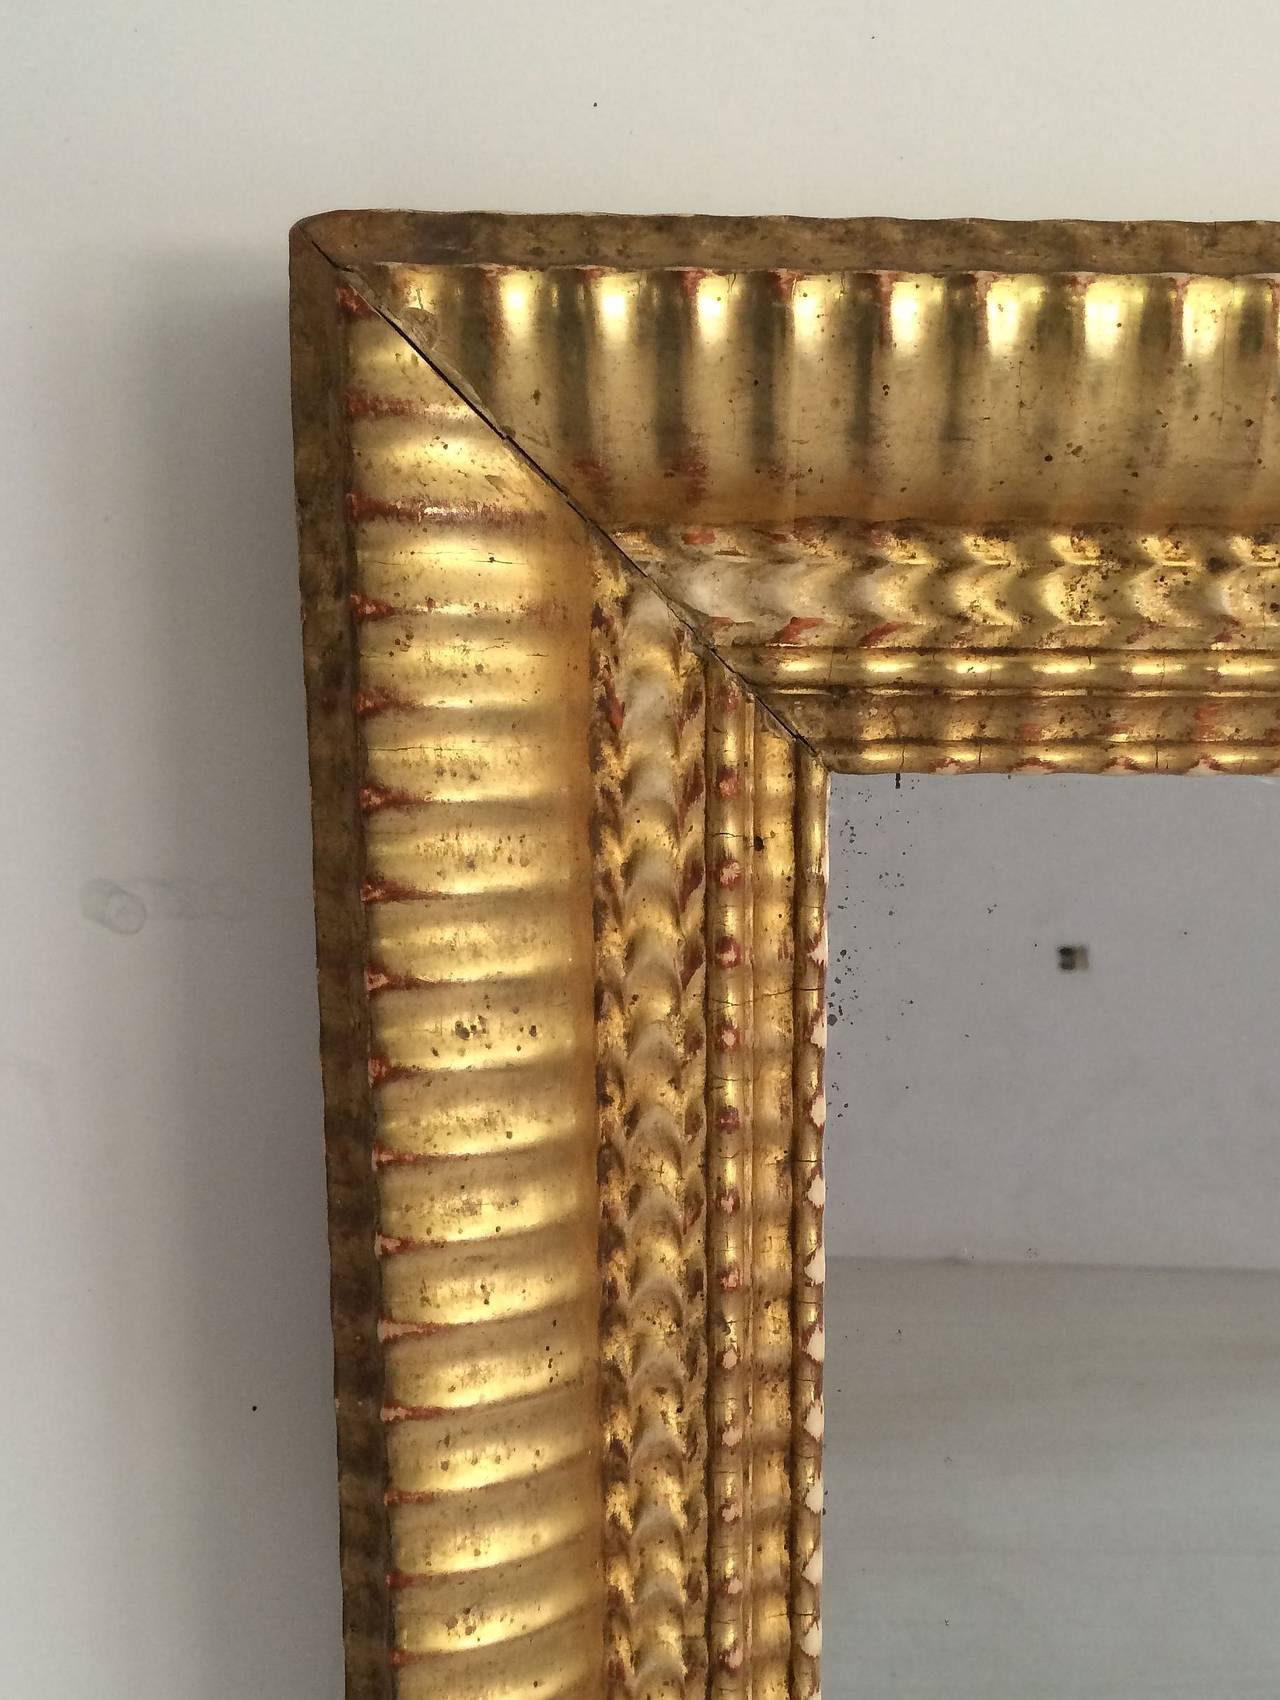 French Gilt Rectangular Wall Mirror (38 x 32) In Excellent Condition For Sale In Austin, TX